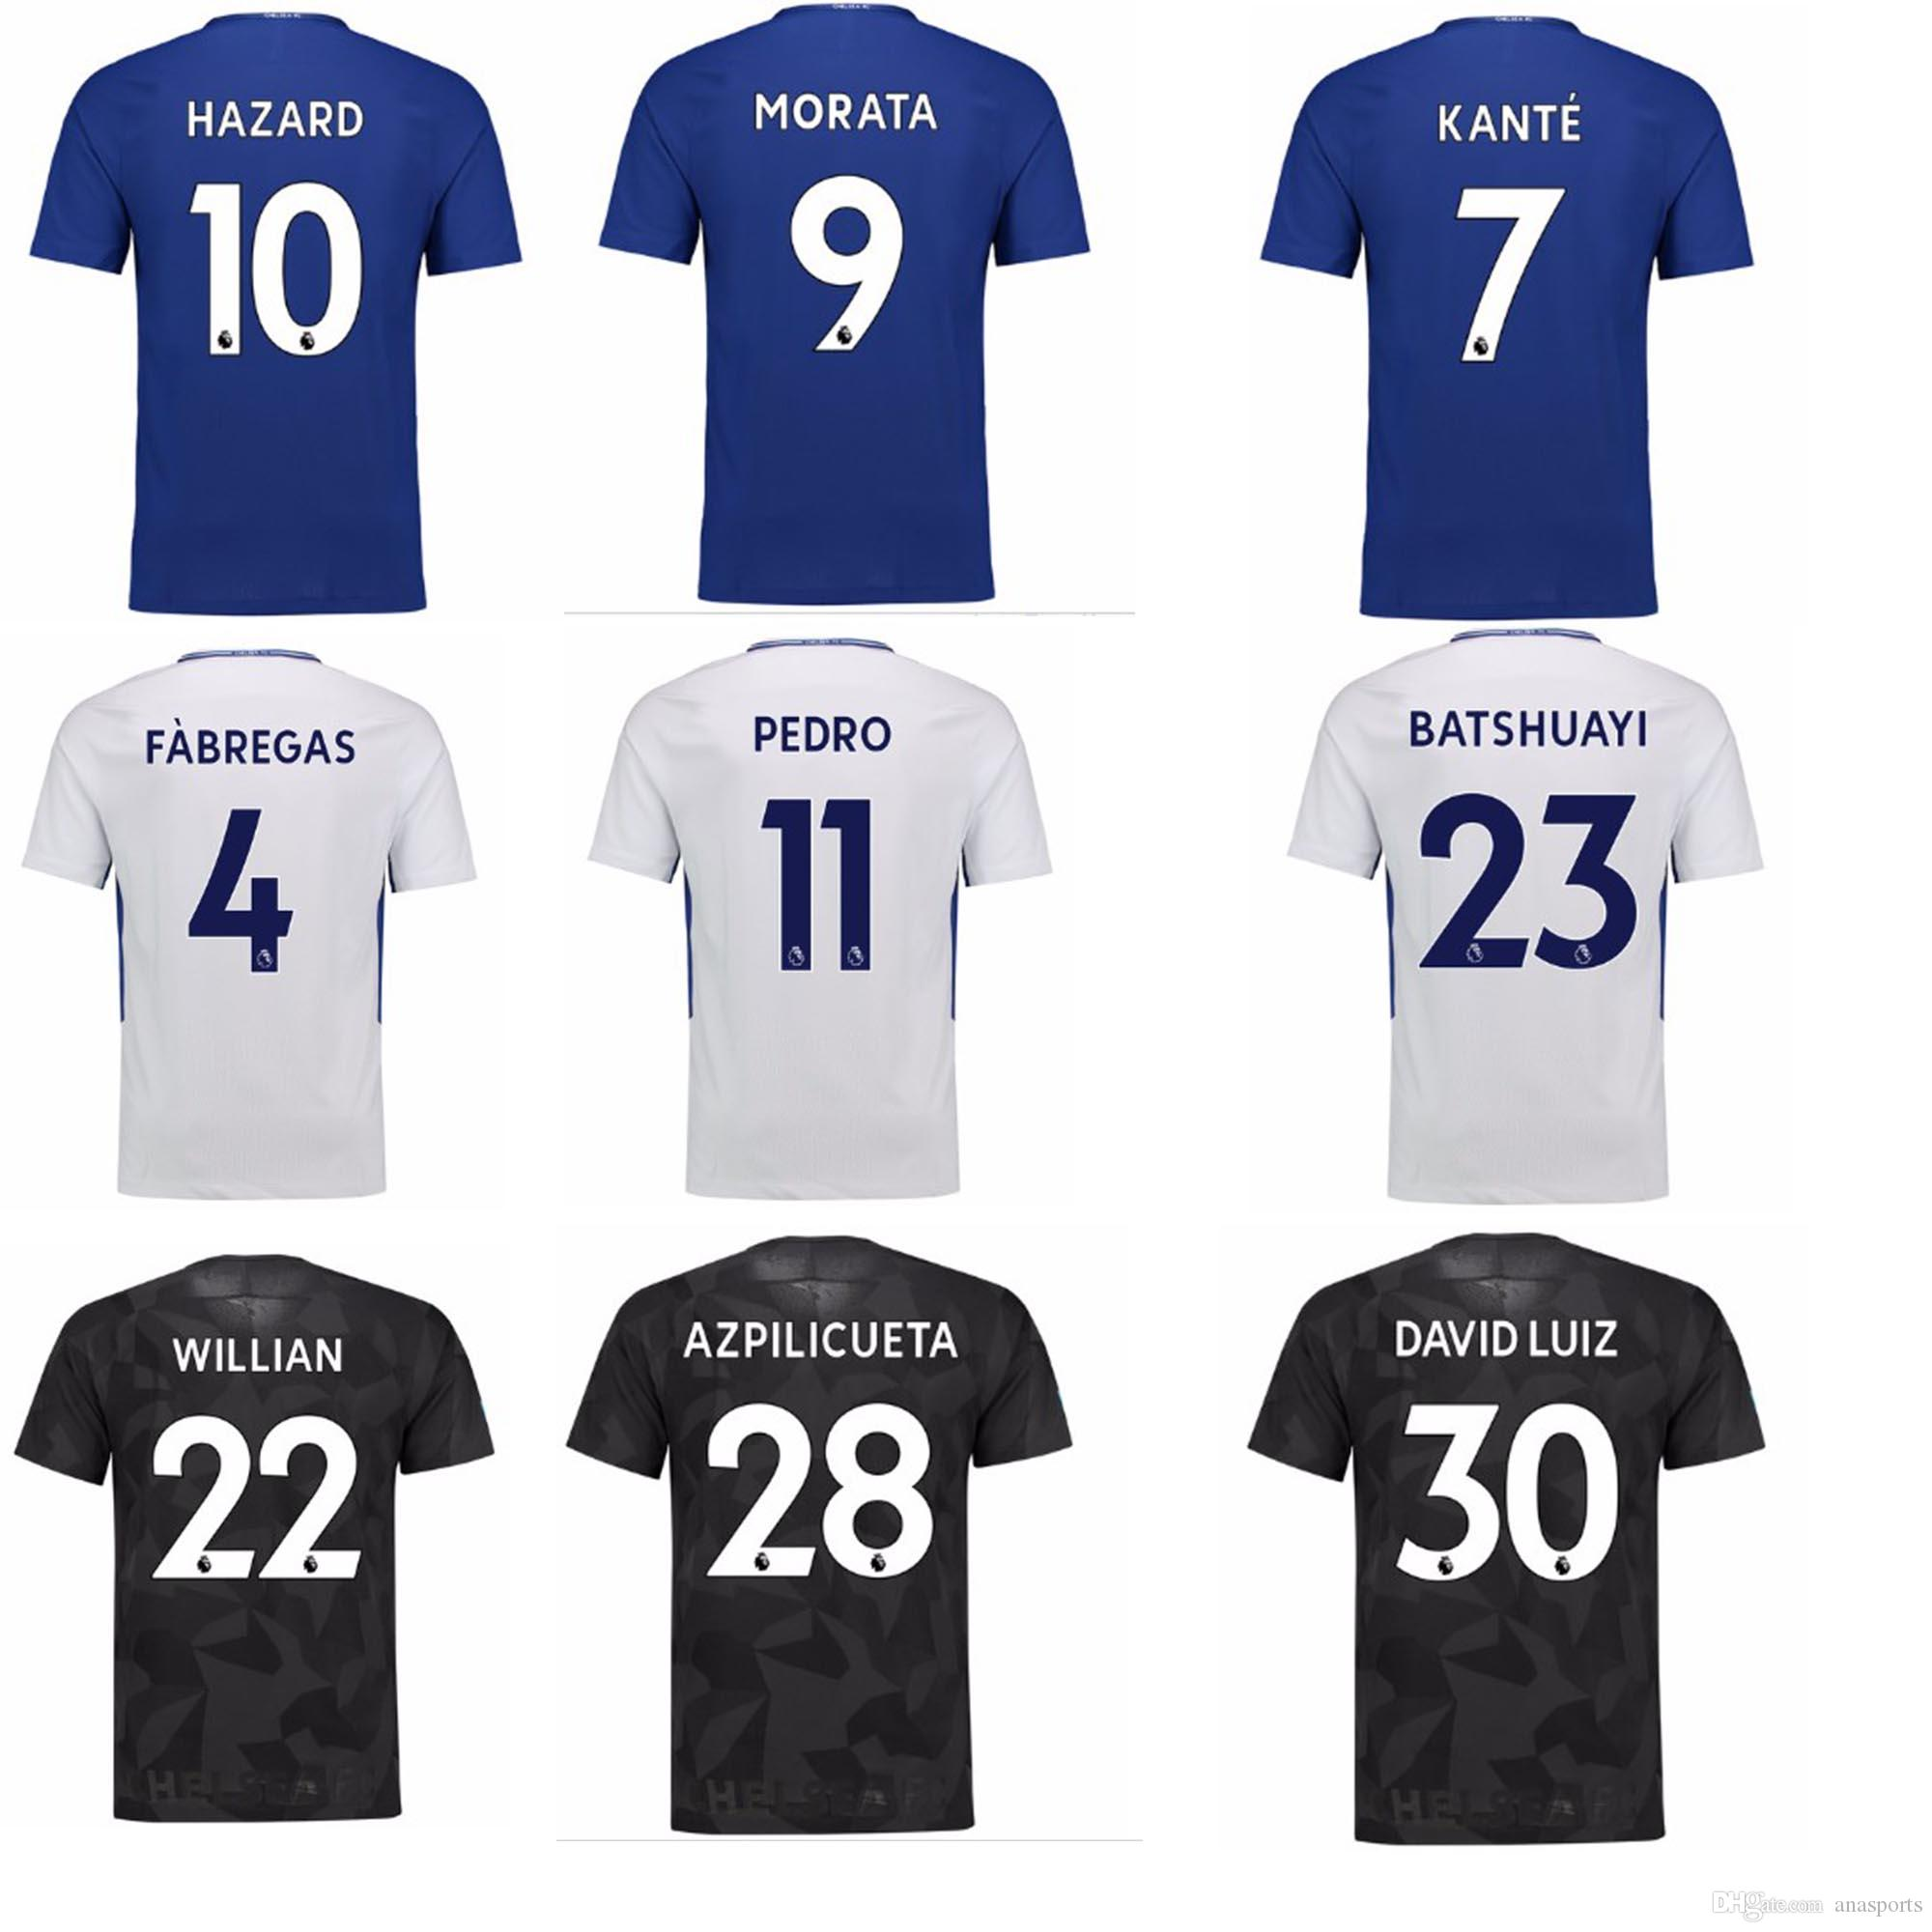 ce771dcca 2019 17 18 Season Top Quality Chelsea Soccer Jersey MORATA Willian HAZARD  Pedro KANTE Fabregas ANY NAME AND NUMBER HOME AWAY THIRD JERSEY From  Anasports